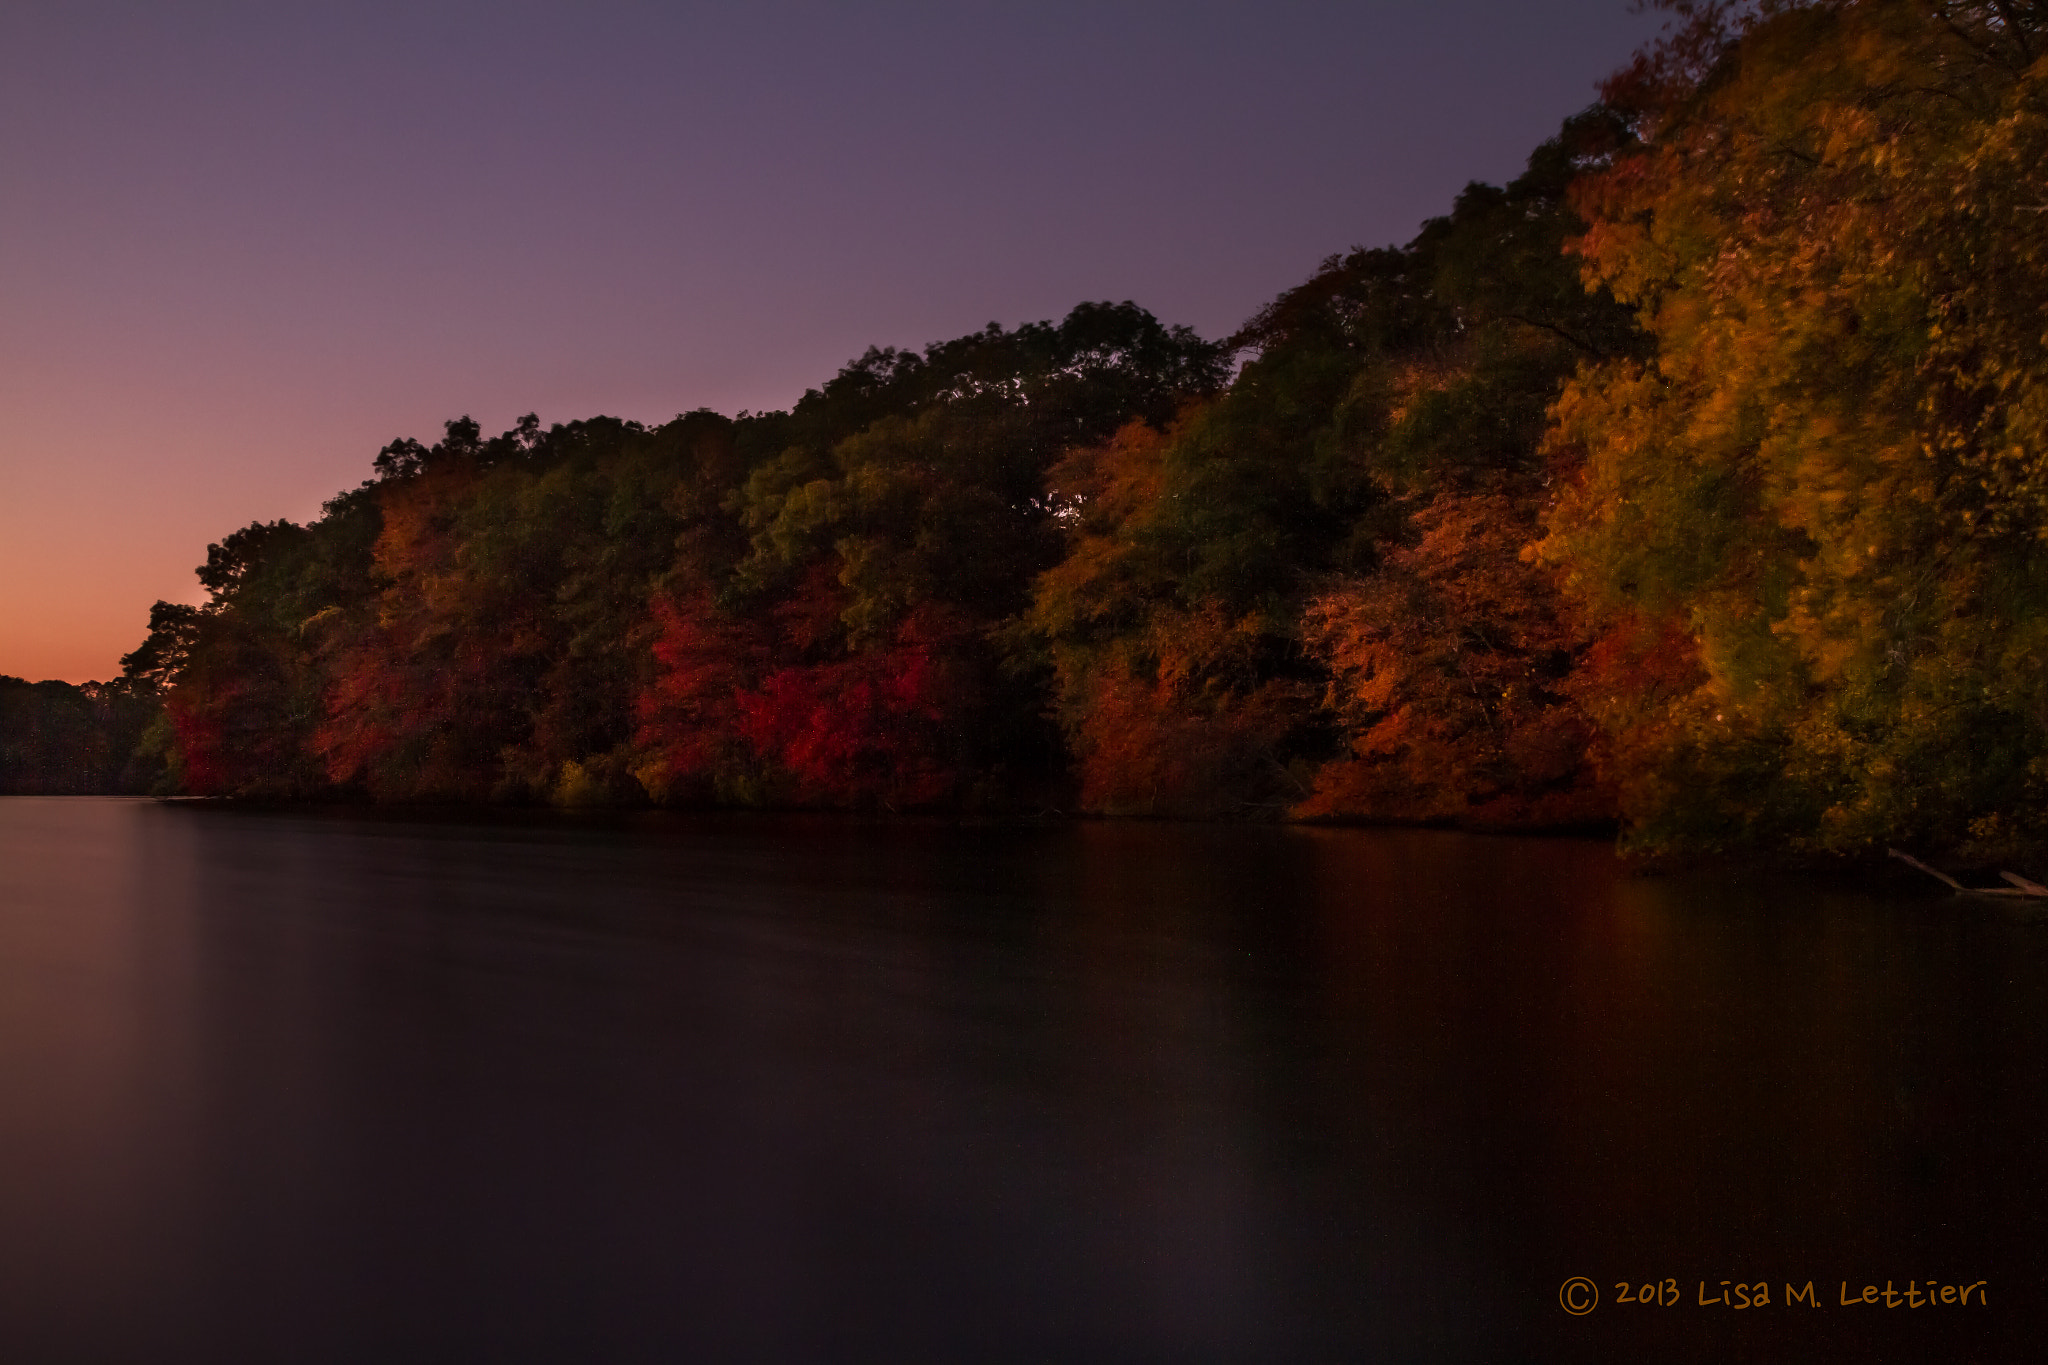 Photograph Foliage at Sunset by Lisa Lettieri on 500px